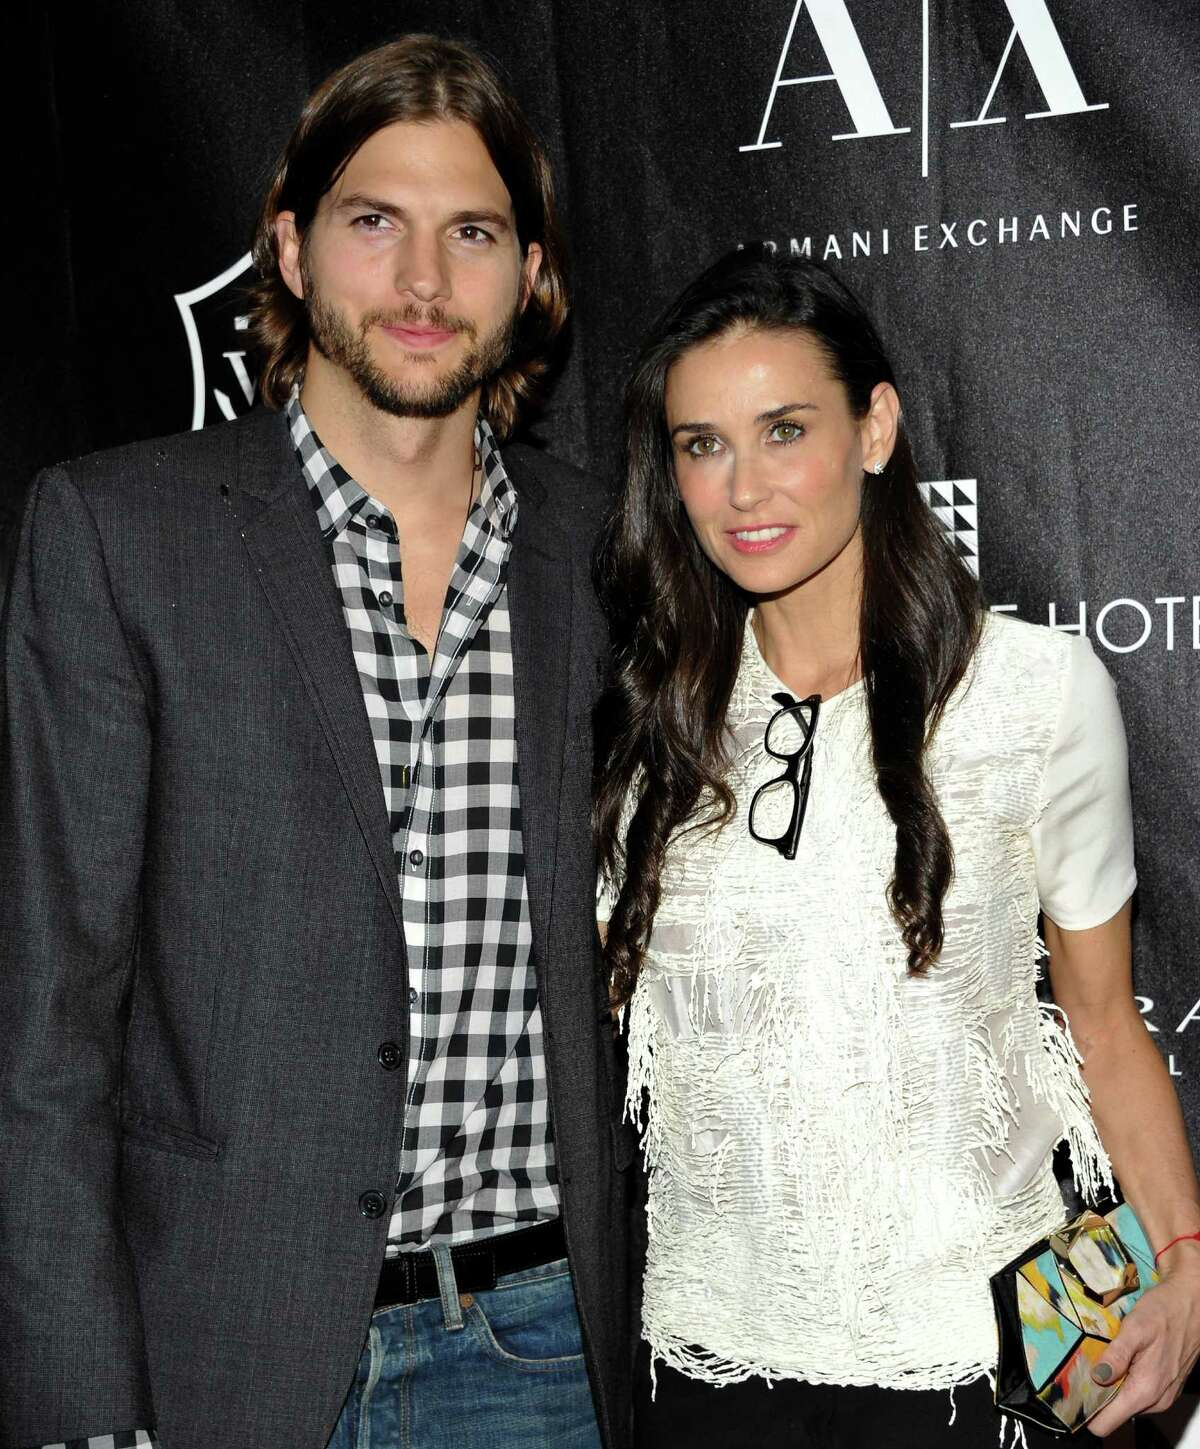 FILE - In this June 9, 2011 file photo, actors Ashton Kutcher and Demi Moore attend the first annual Stephan Weiss Apple Awards at the Urban Zen Center in New York. A Los Angeles judge finalized Moore and Kutcher's divorce on Tuesday, Nov. 26, 2013, less than a year after Kutcher's petitioned to end the couple's marriage. (AP Photo/Evan Agostini, file) ORG XMIT: NYET333